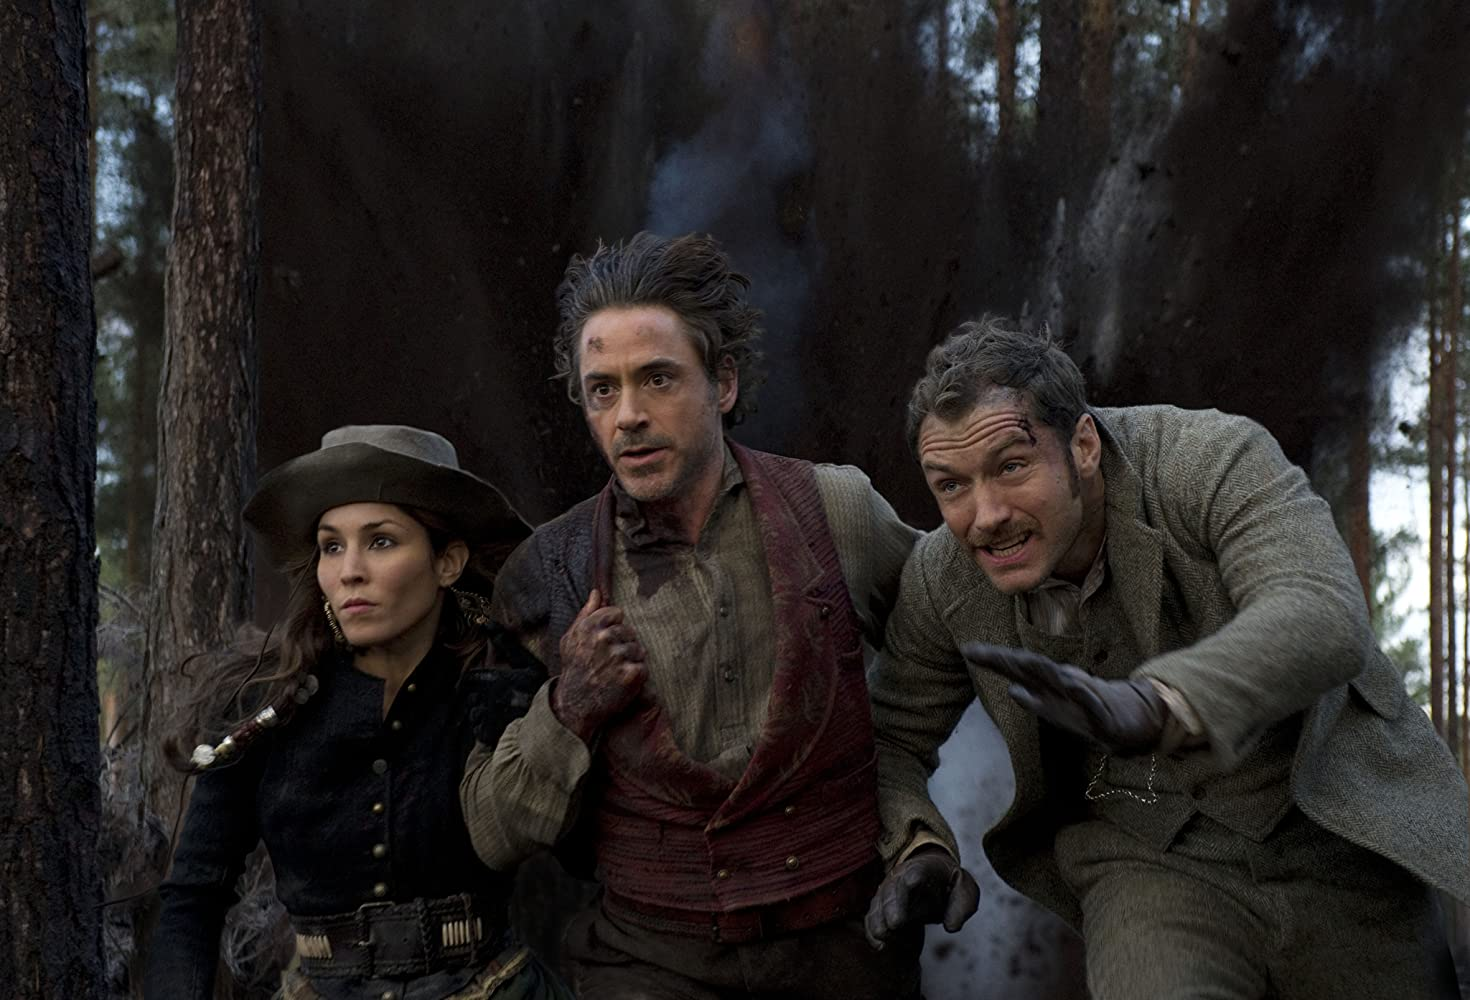 Jude Law, Robert Downey Jr., and Noomi Rapace in Sherlock Holmes: A Game of Shadows (2011)